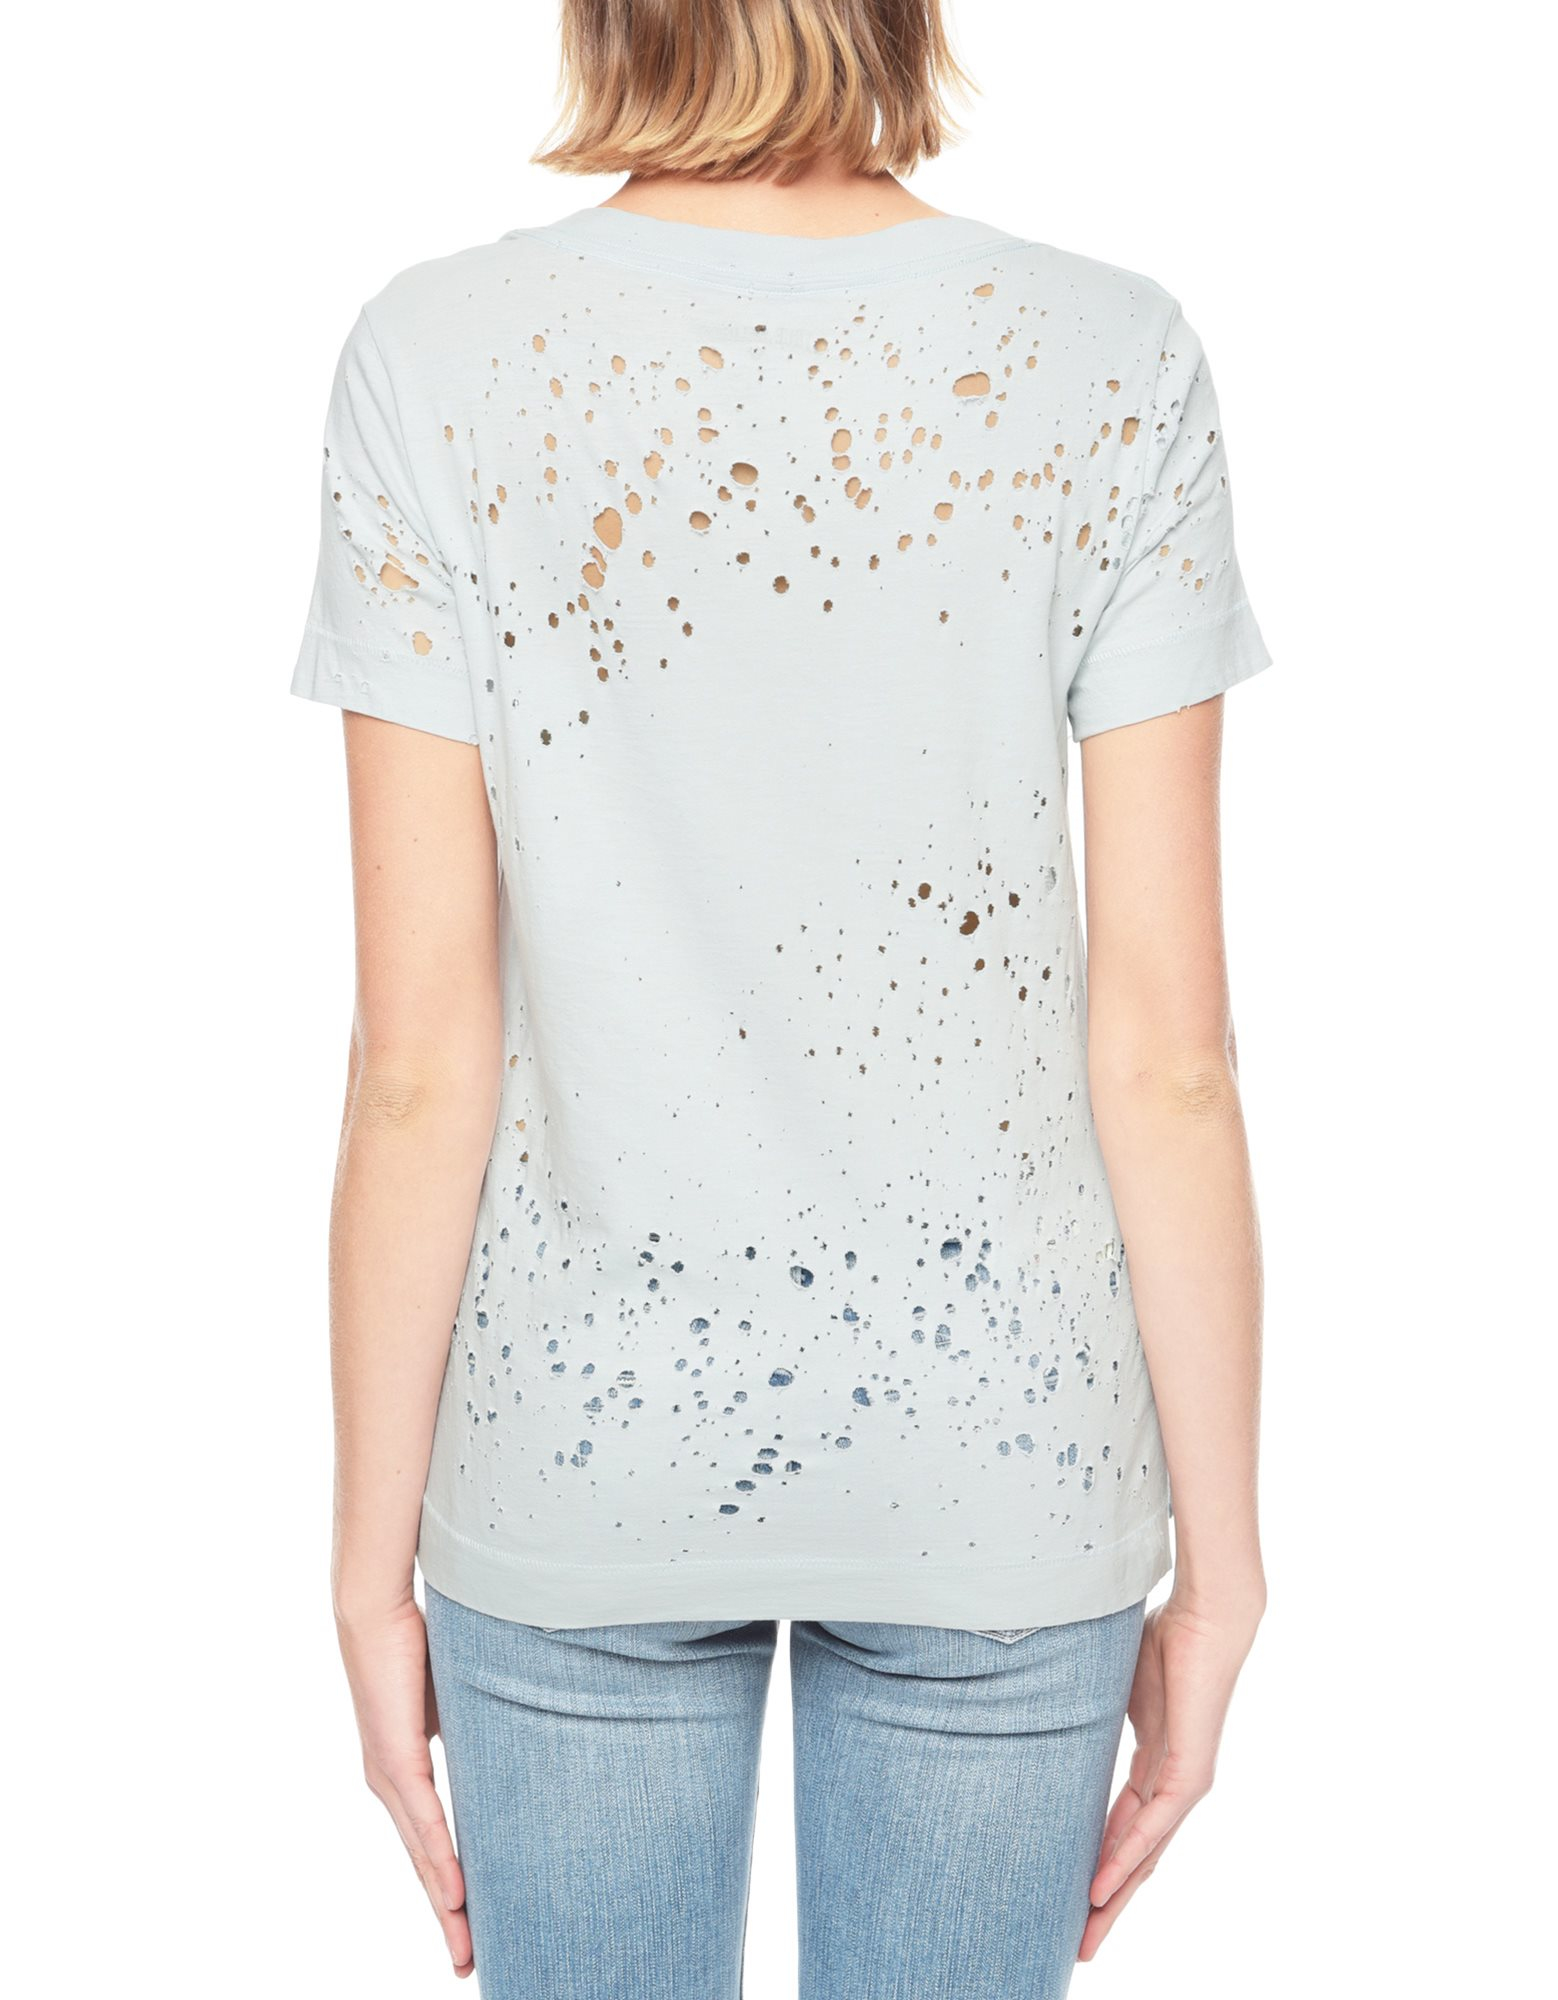 True religion distressed holes logo womens t shirt in gray for How to make a distressed shirt